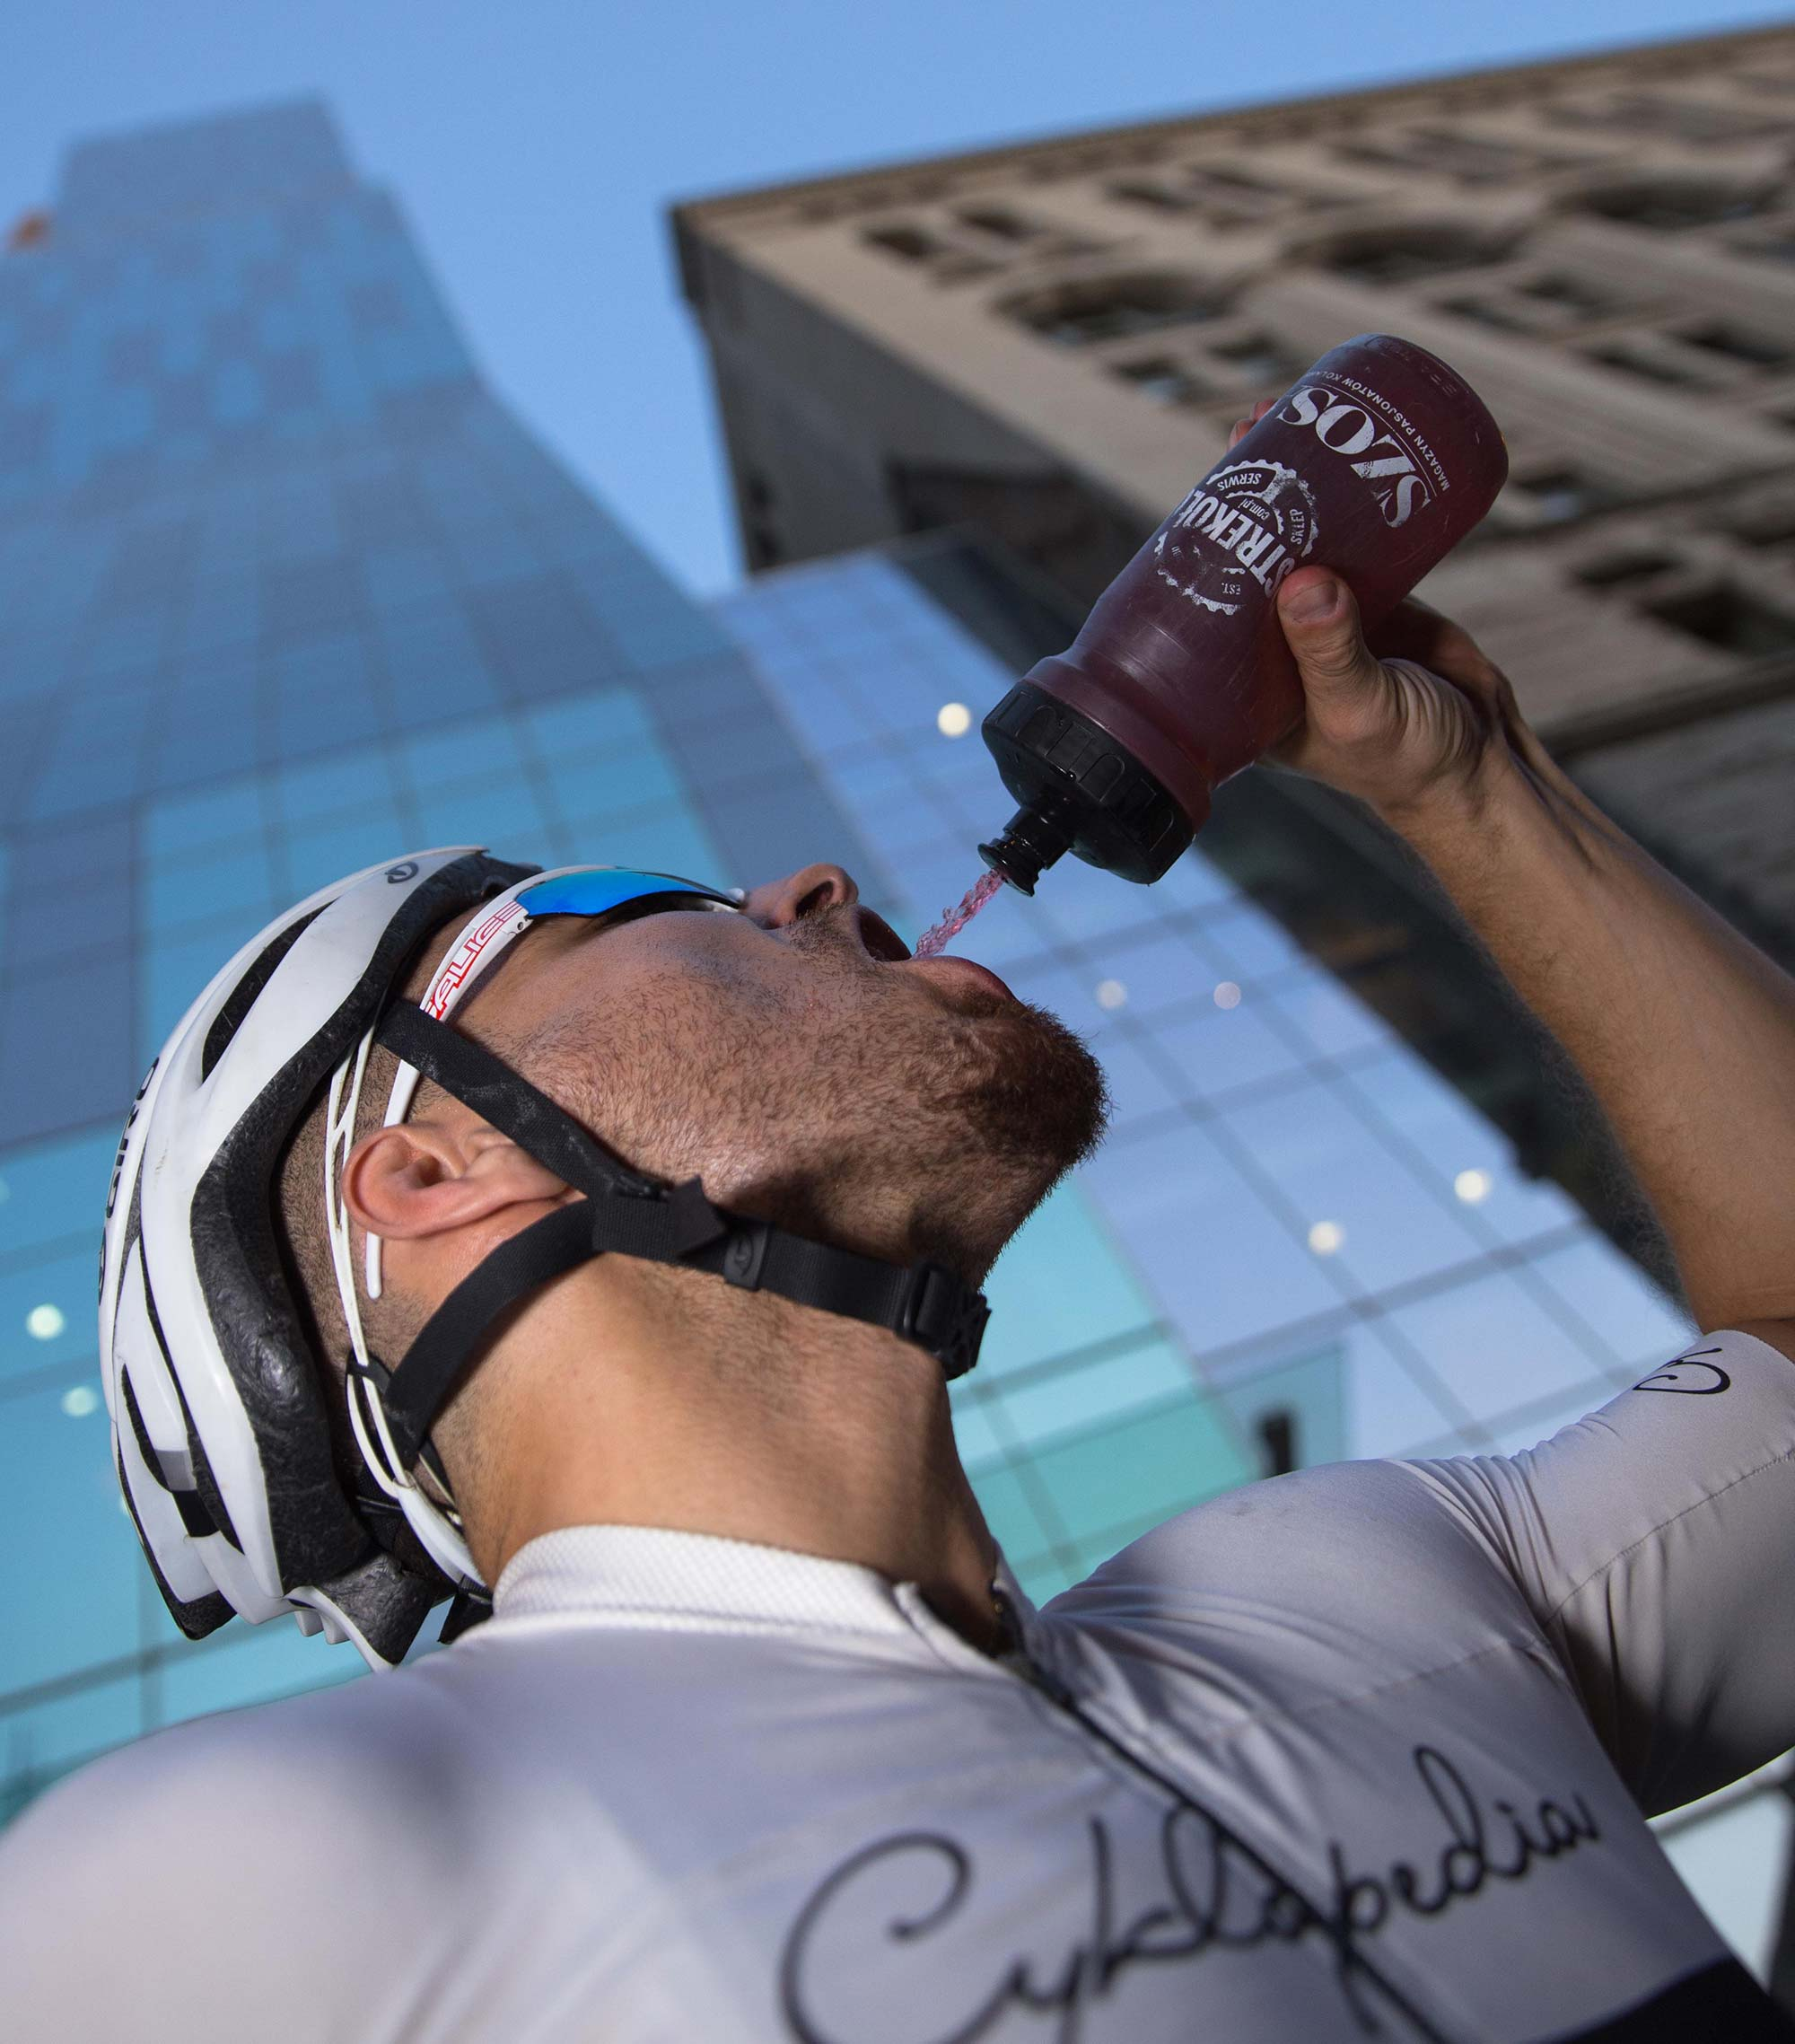 Hydration for cycling everything you should know